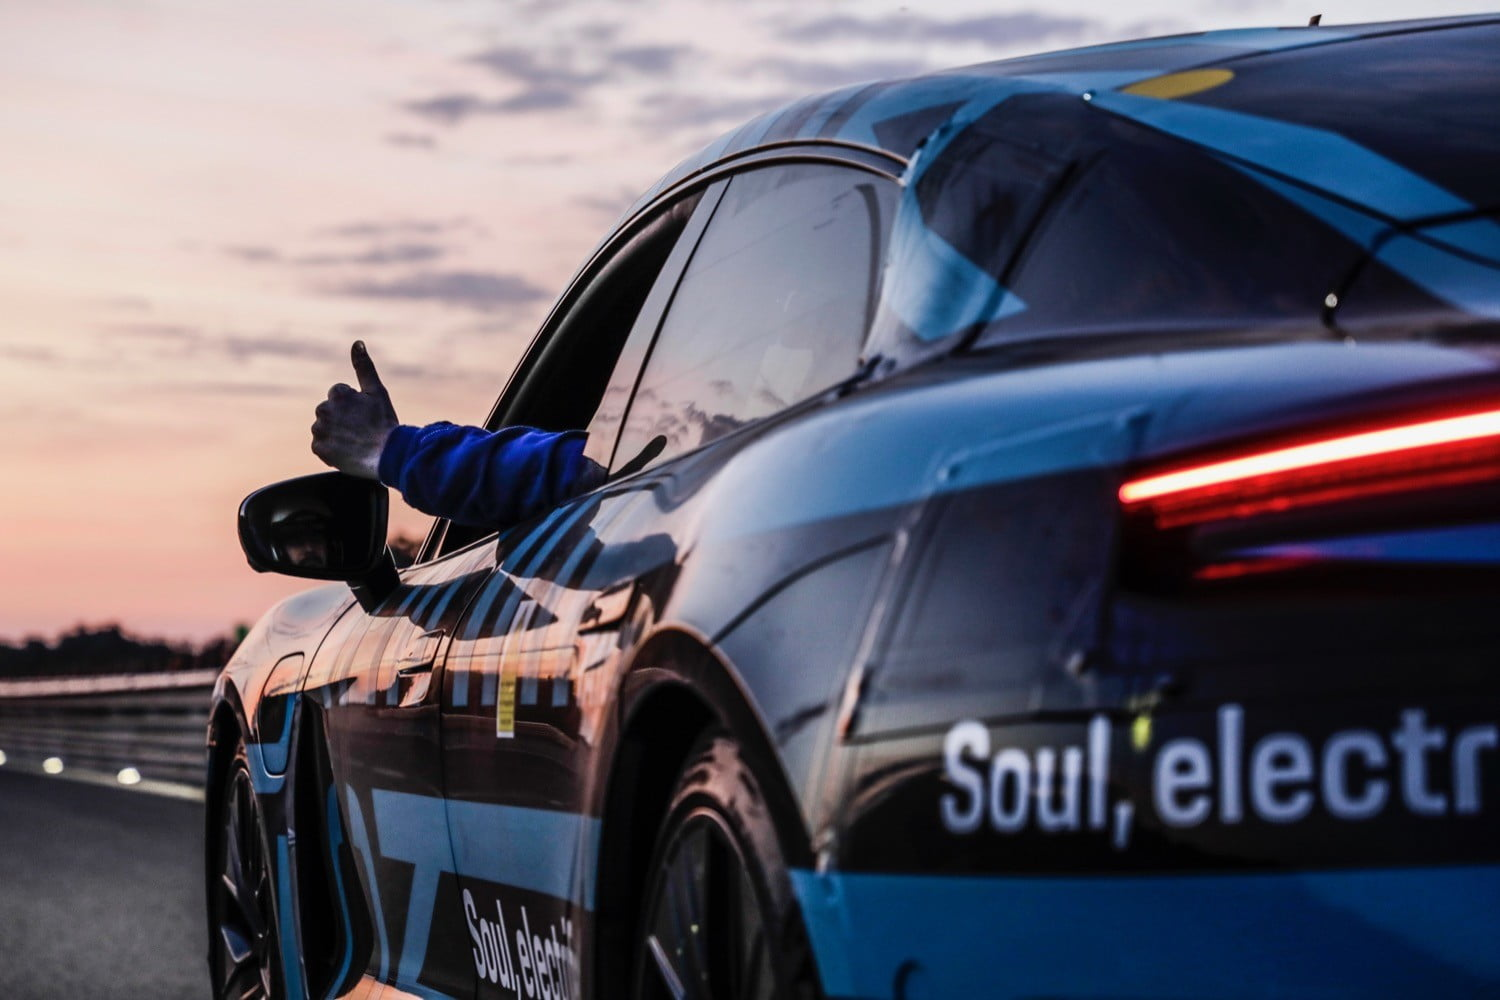 porsche taycan electric car prototype driven 2128 miles in 24 hours hour endurance test